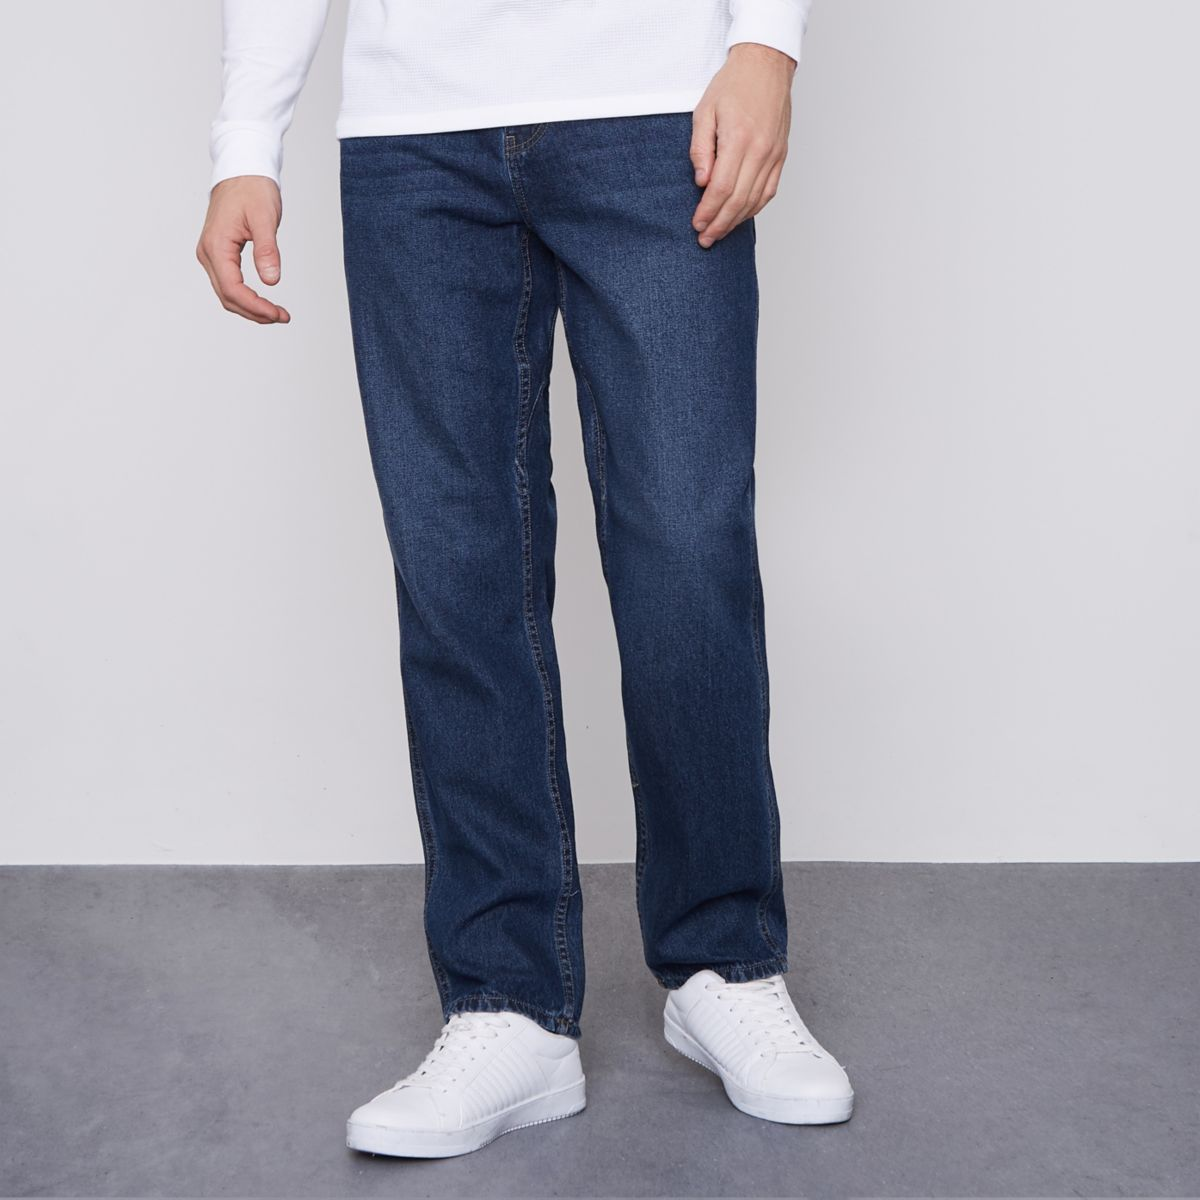 Monkee Genes Blaue Worker-Jeans in Loose Fit